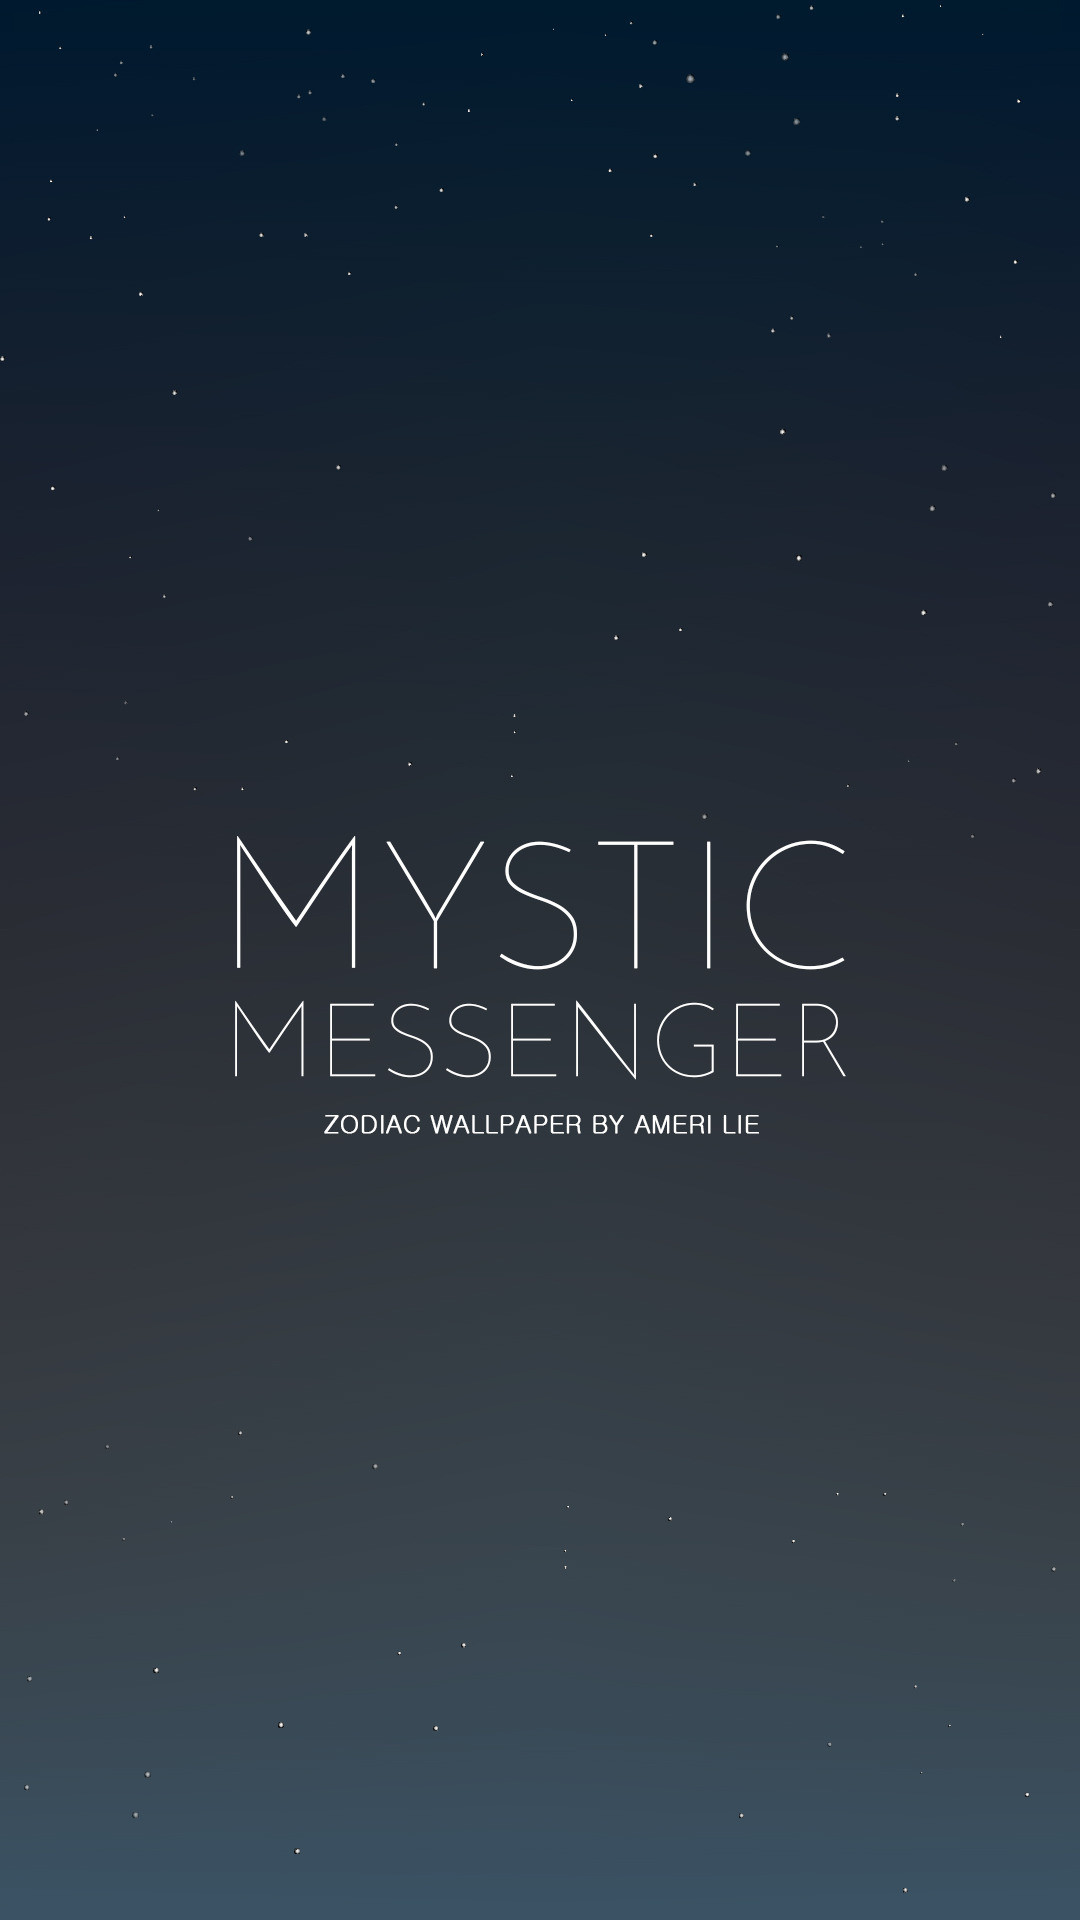 Res: 1080x1920, 『 Mystic Messenger 』 Zodiac Wallpaper